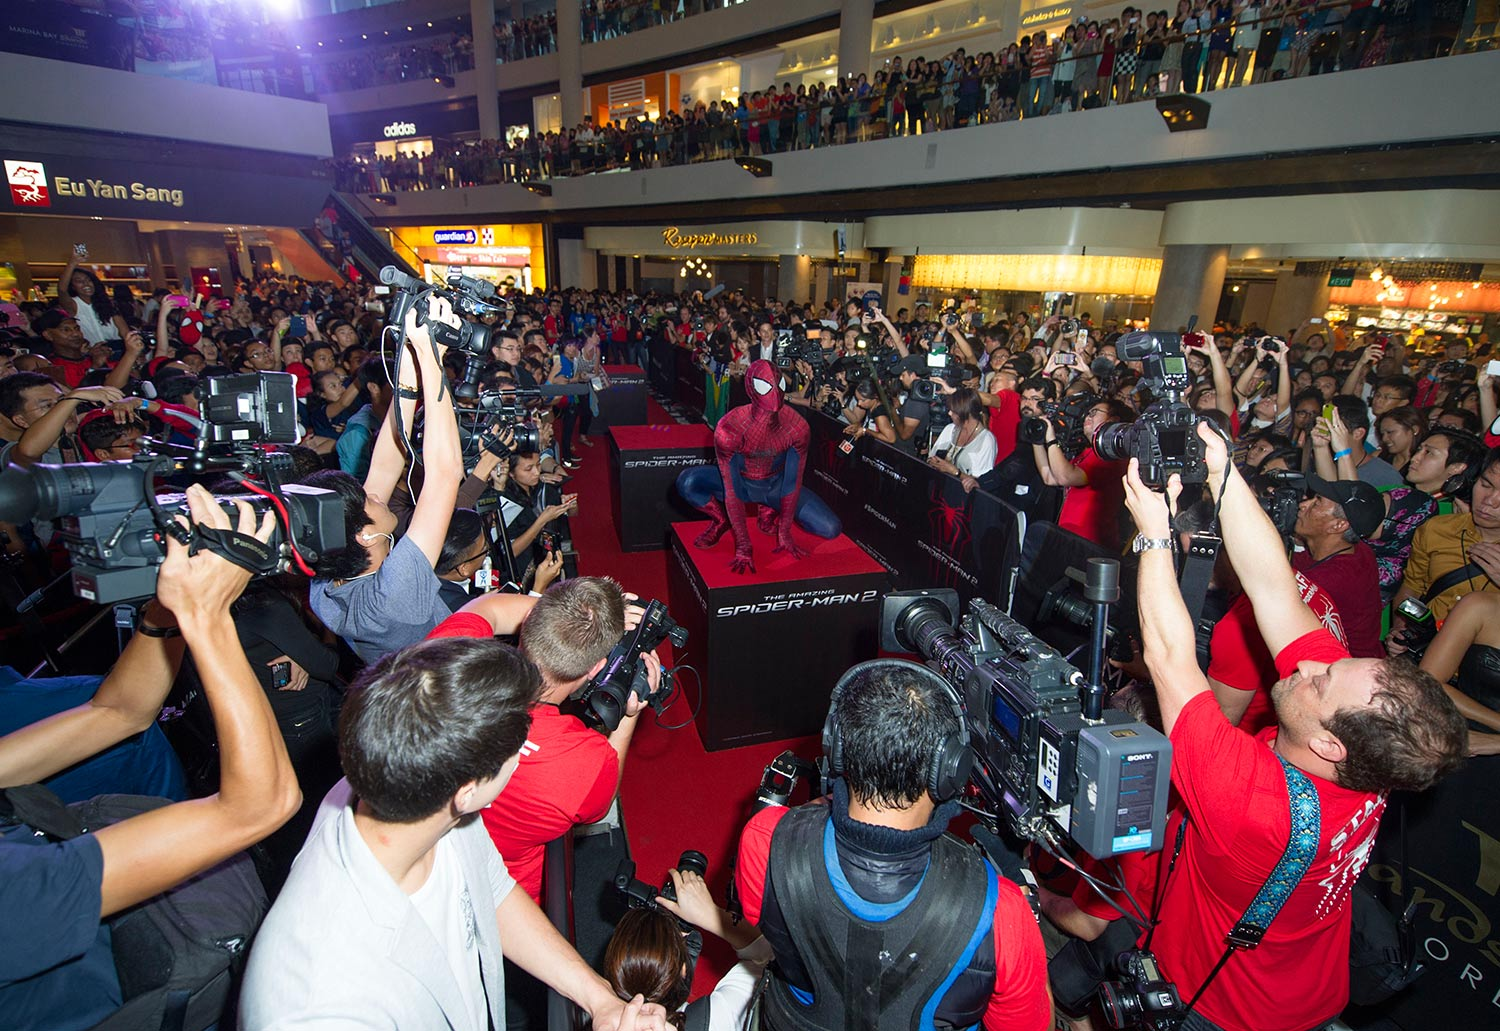 Spider-Man 2 Red Carpet event at MBS